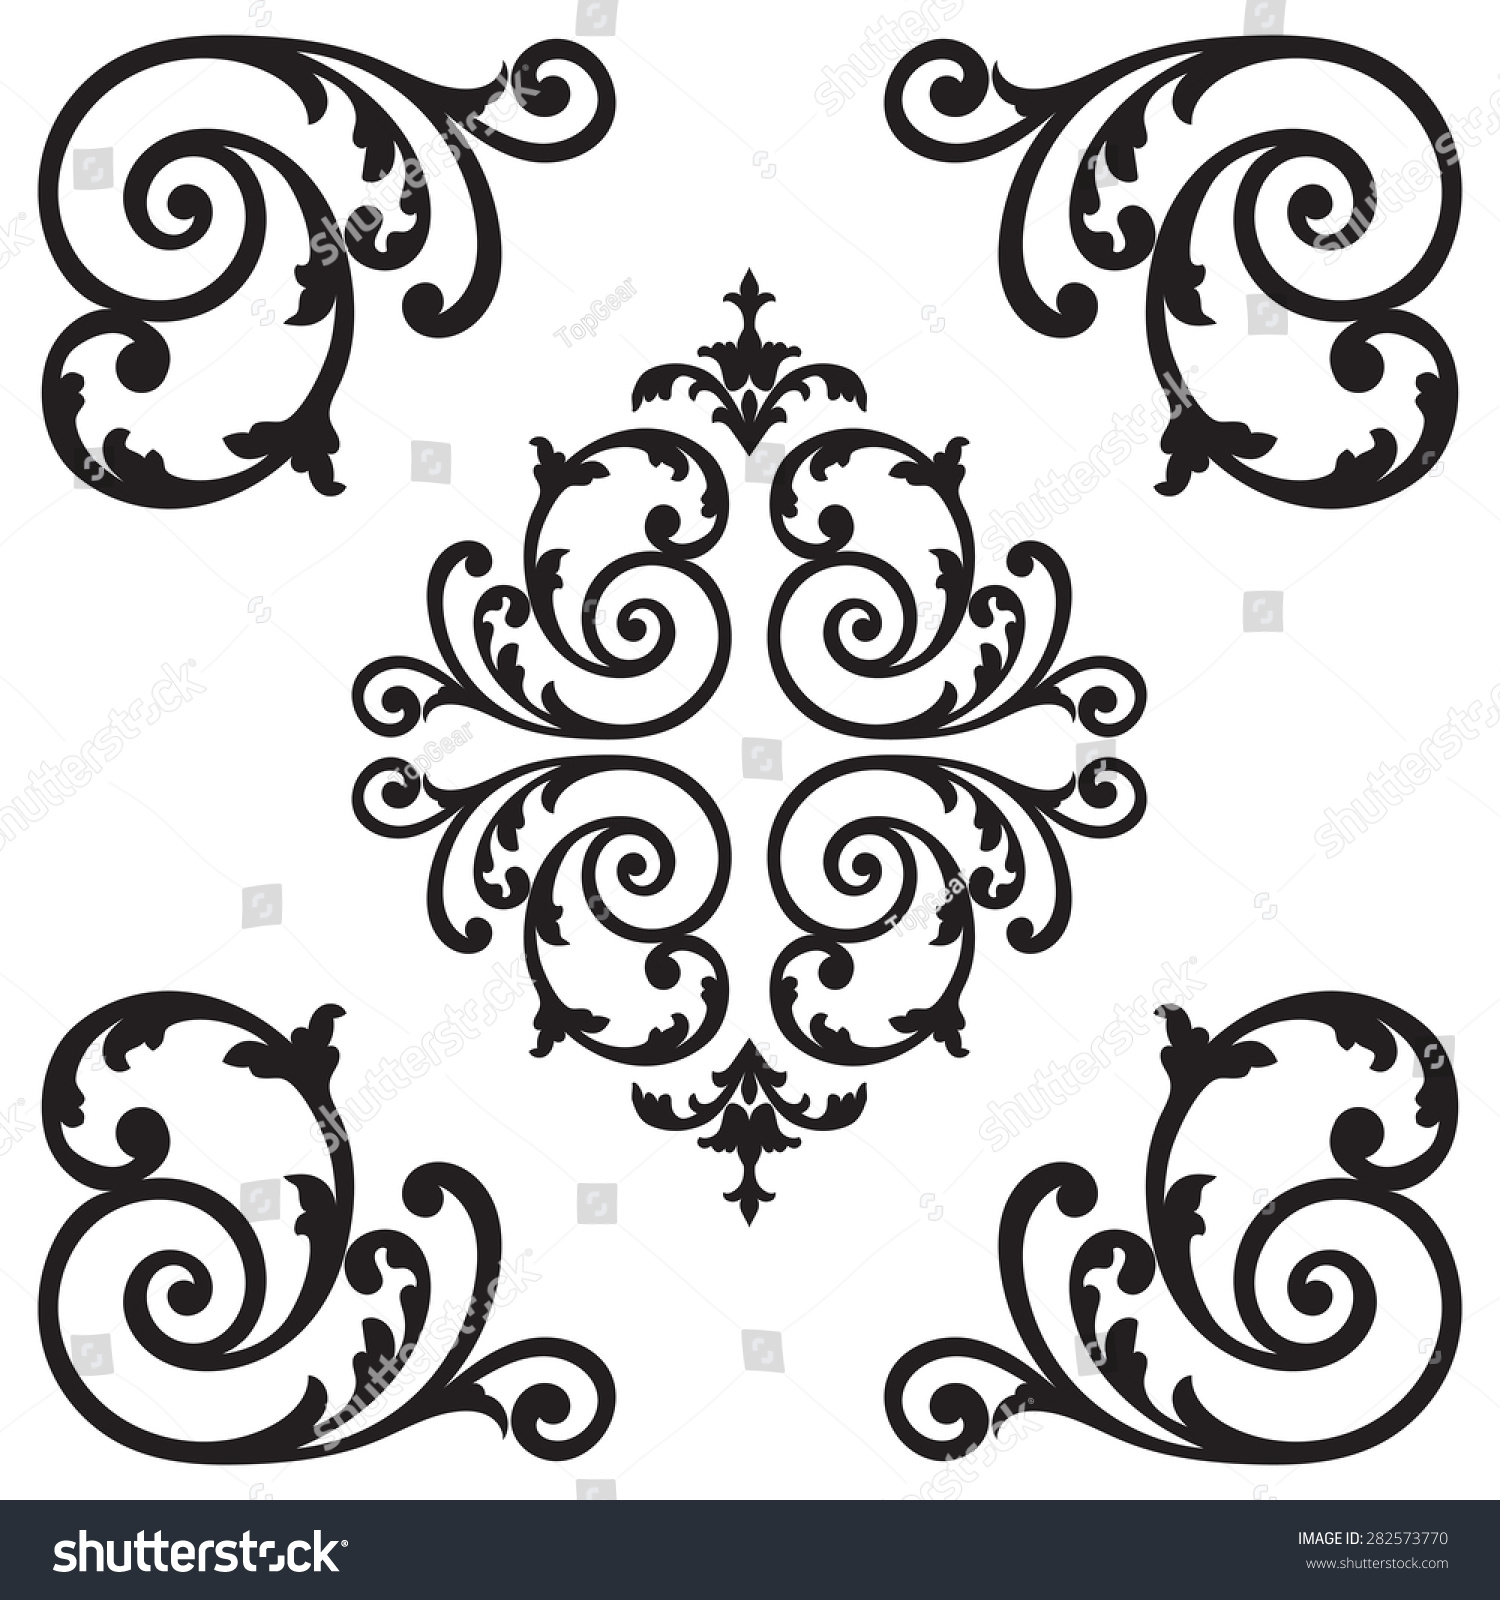 Decorative Black Flower Border Stock Image: Page Decoration Decorative Floral Elements Corners Stock